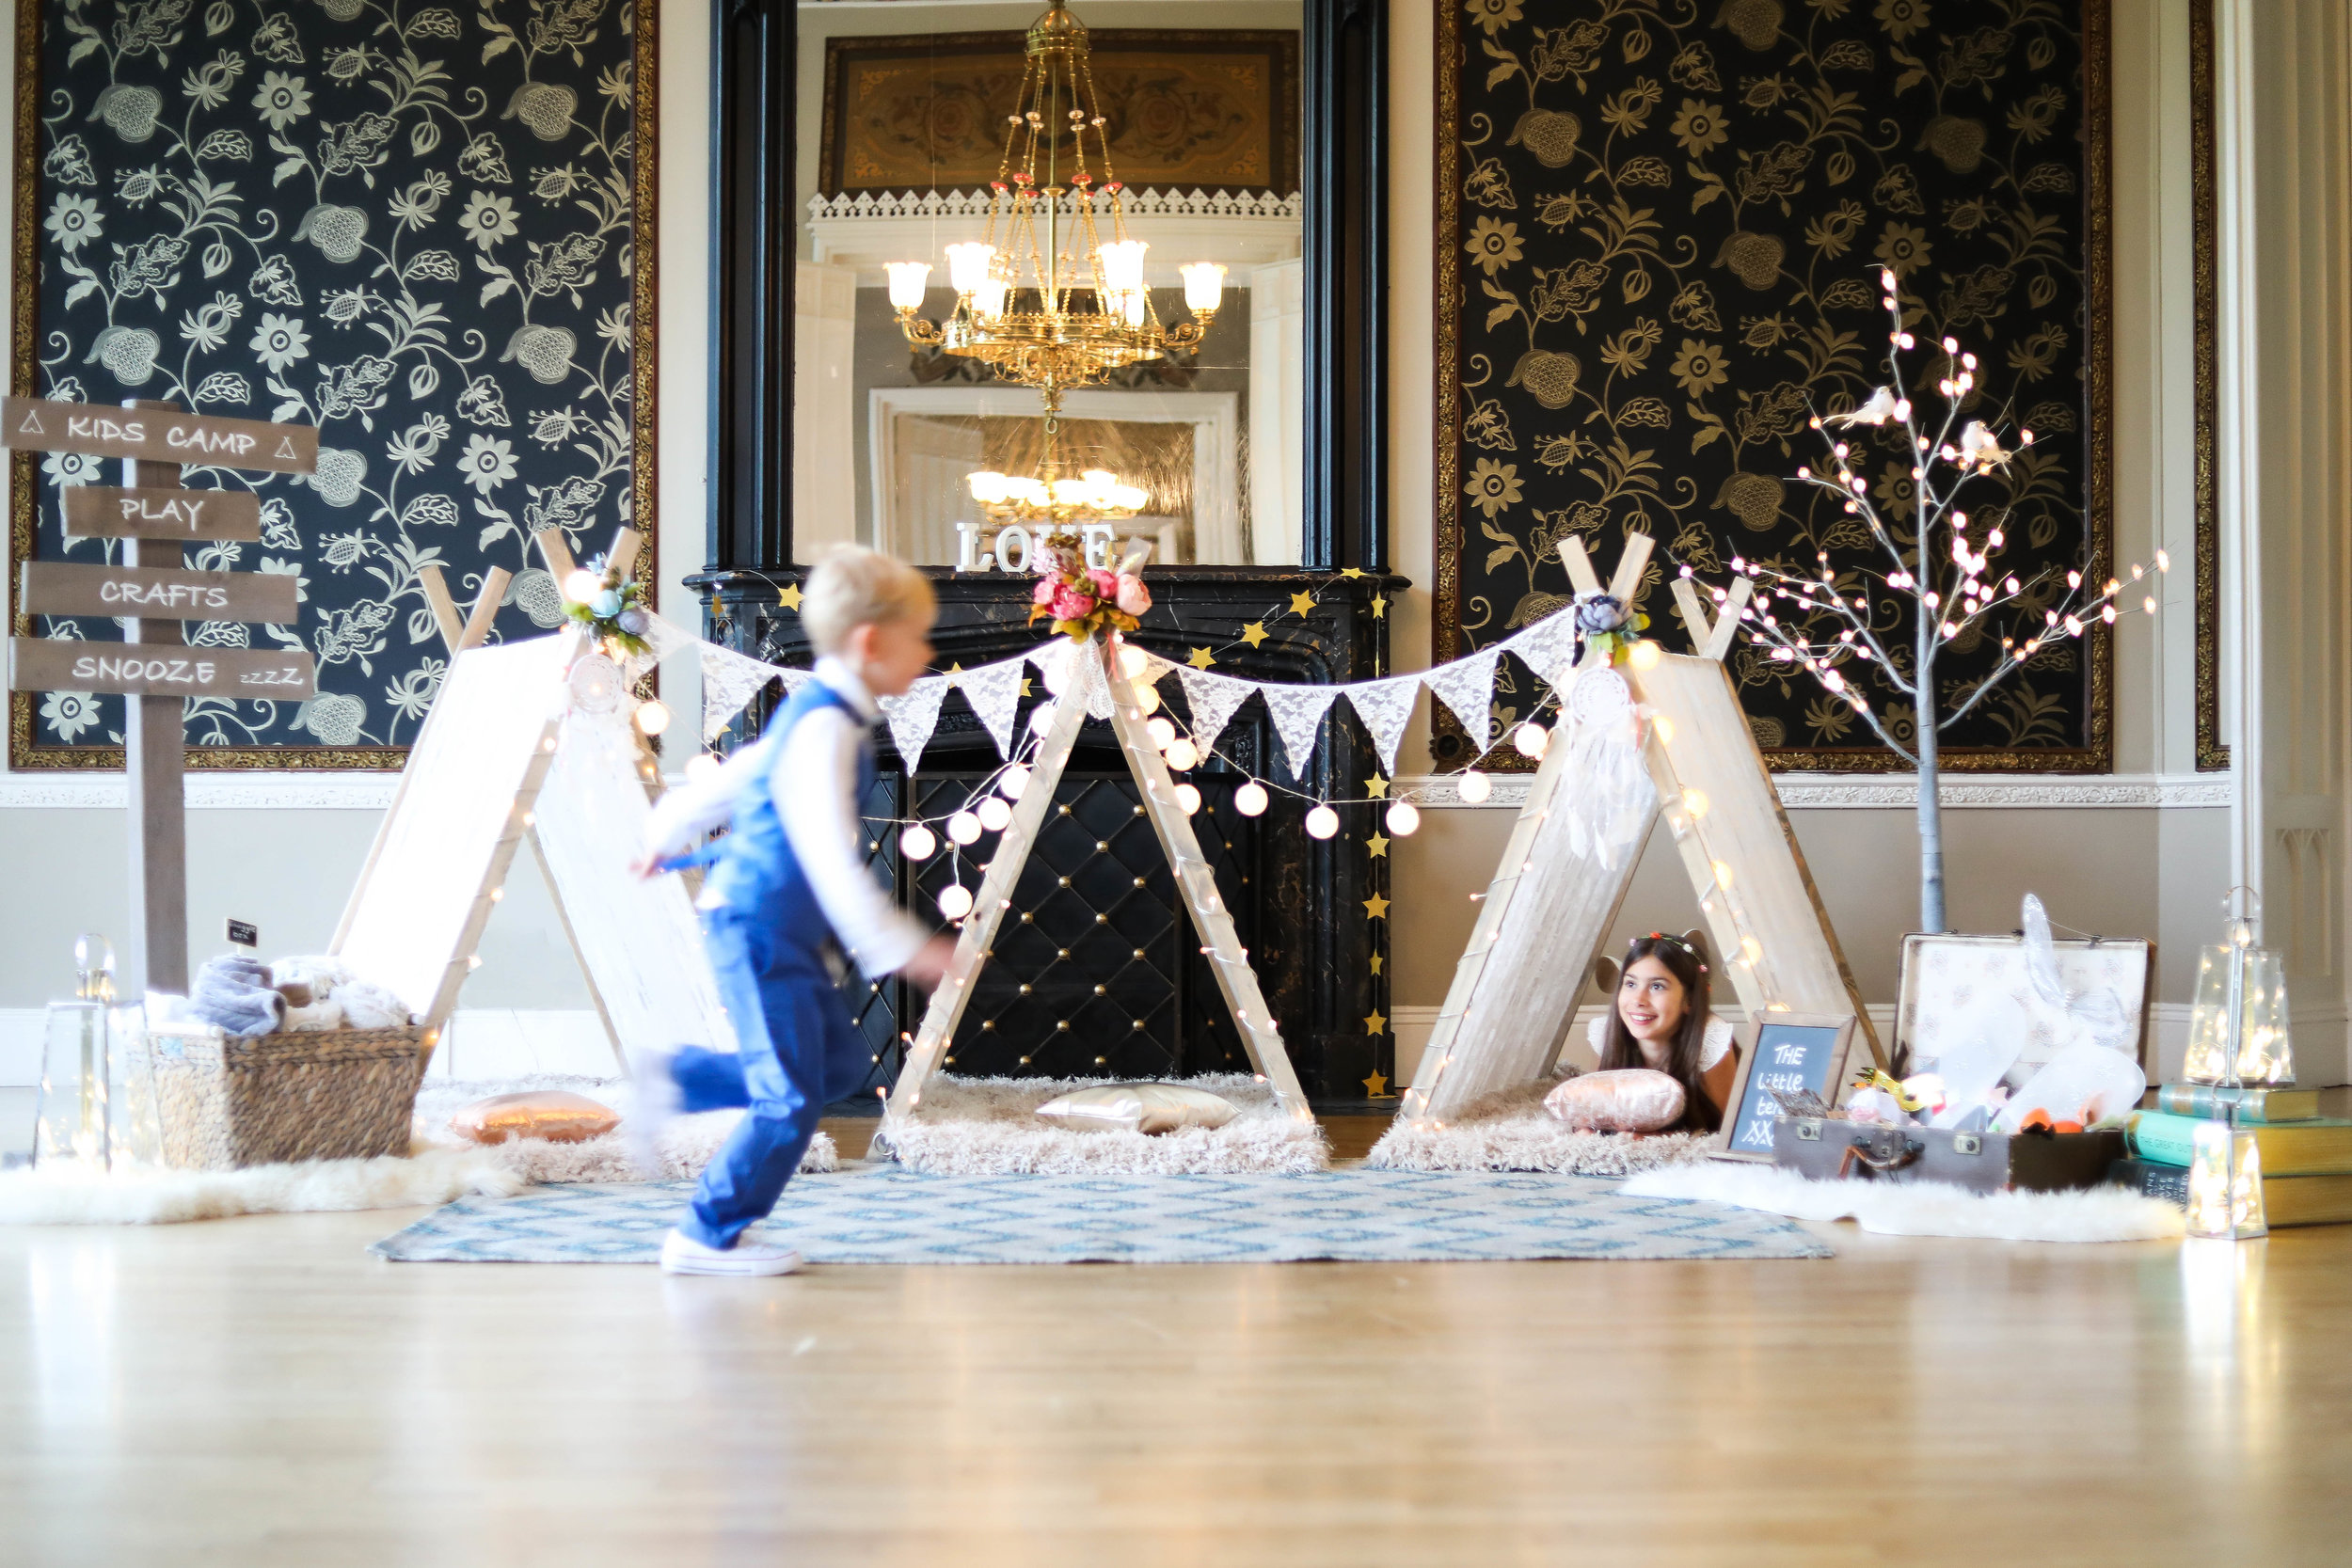 The Little Tents - New company, The Little Tents, provides beautiful handmade indoor tents to create a magical space for children to play and relax at weddings and other special events.  They needed imagery for their marketing activity.Learn more...